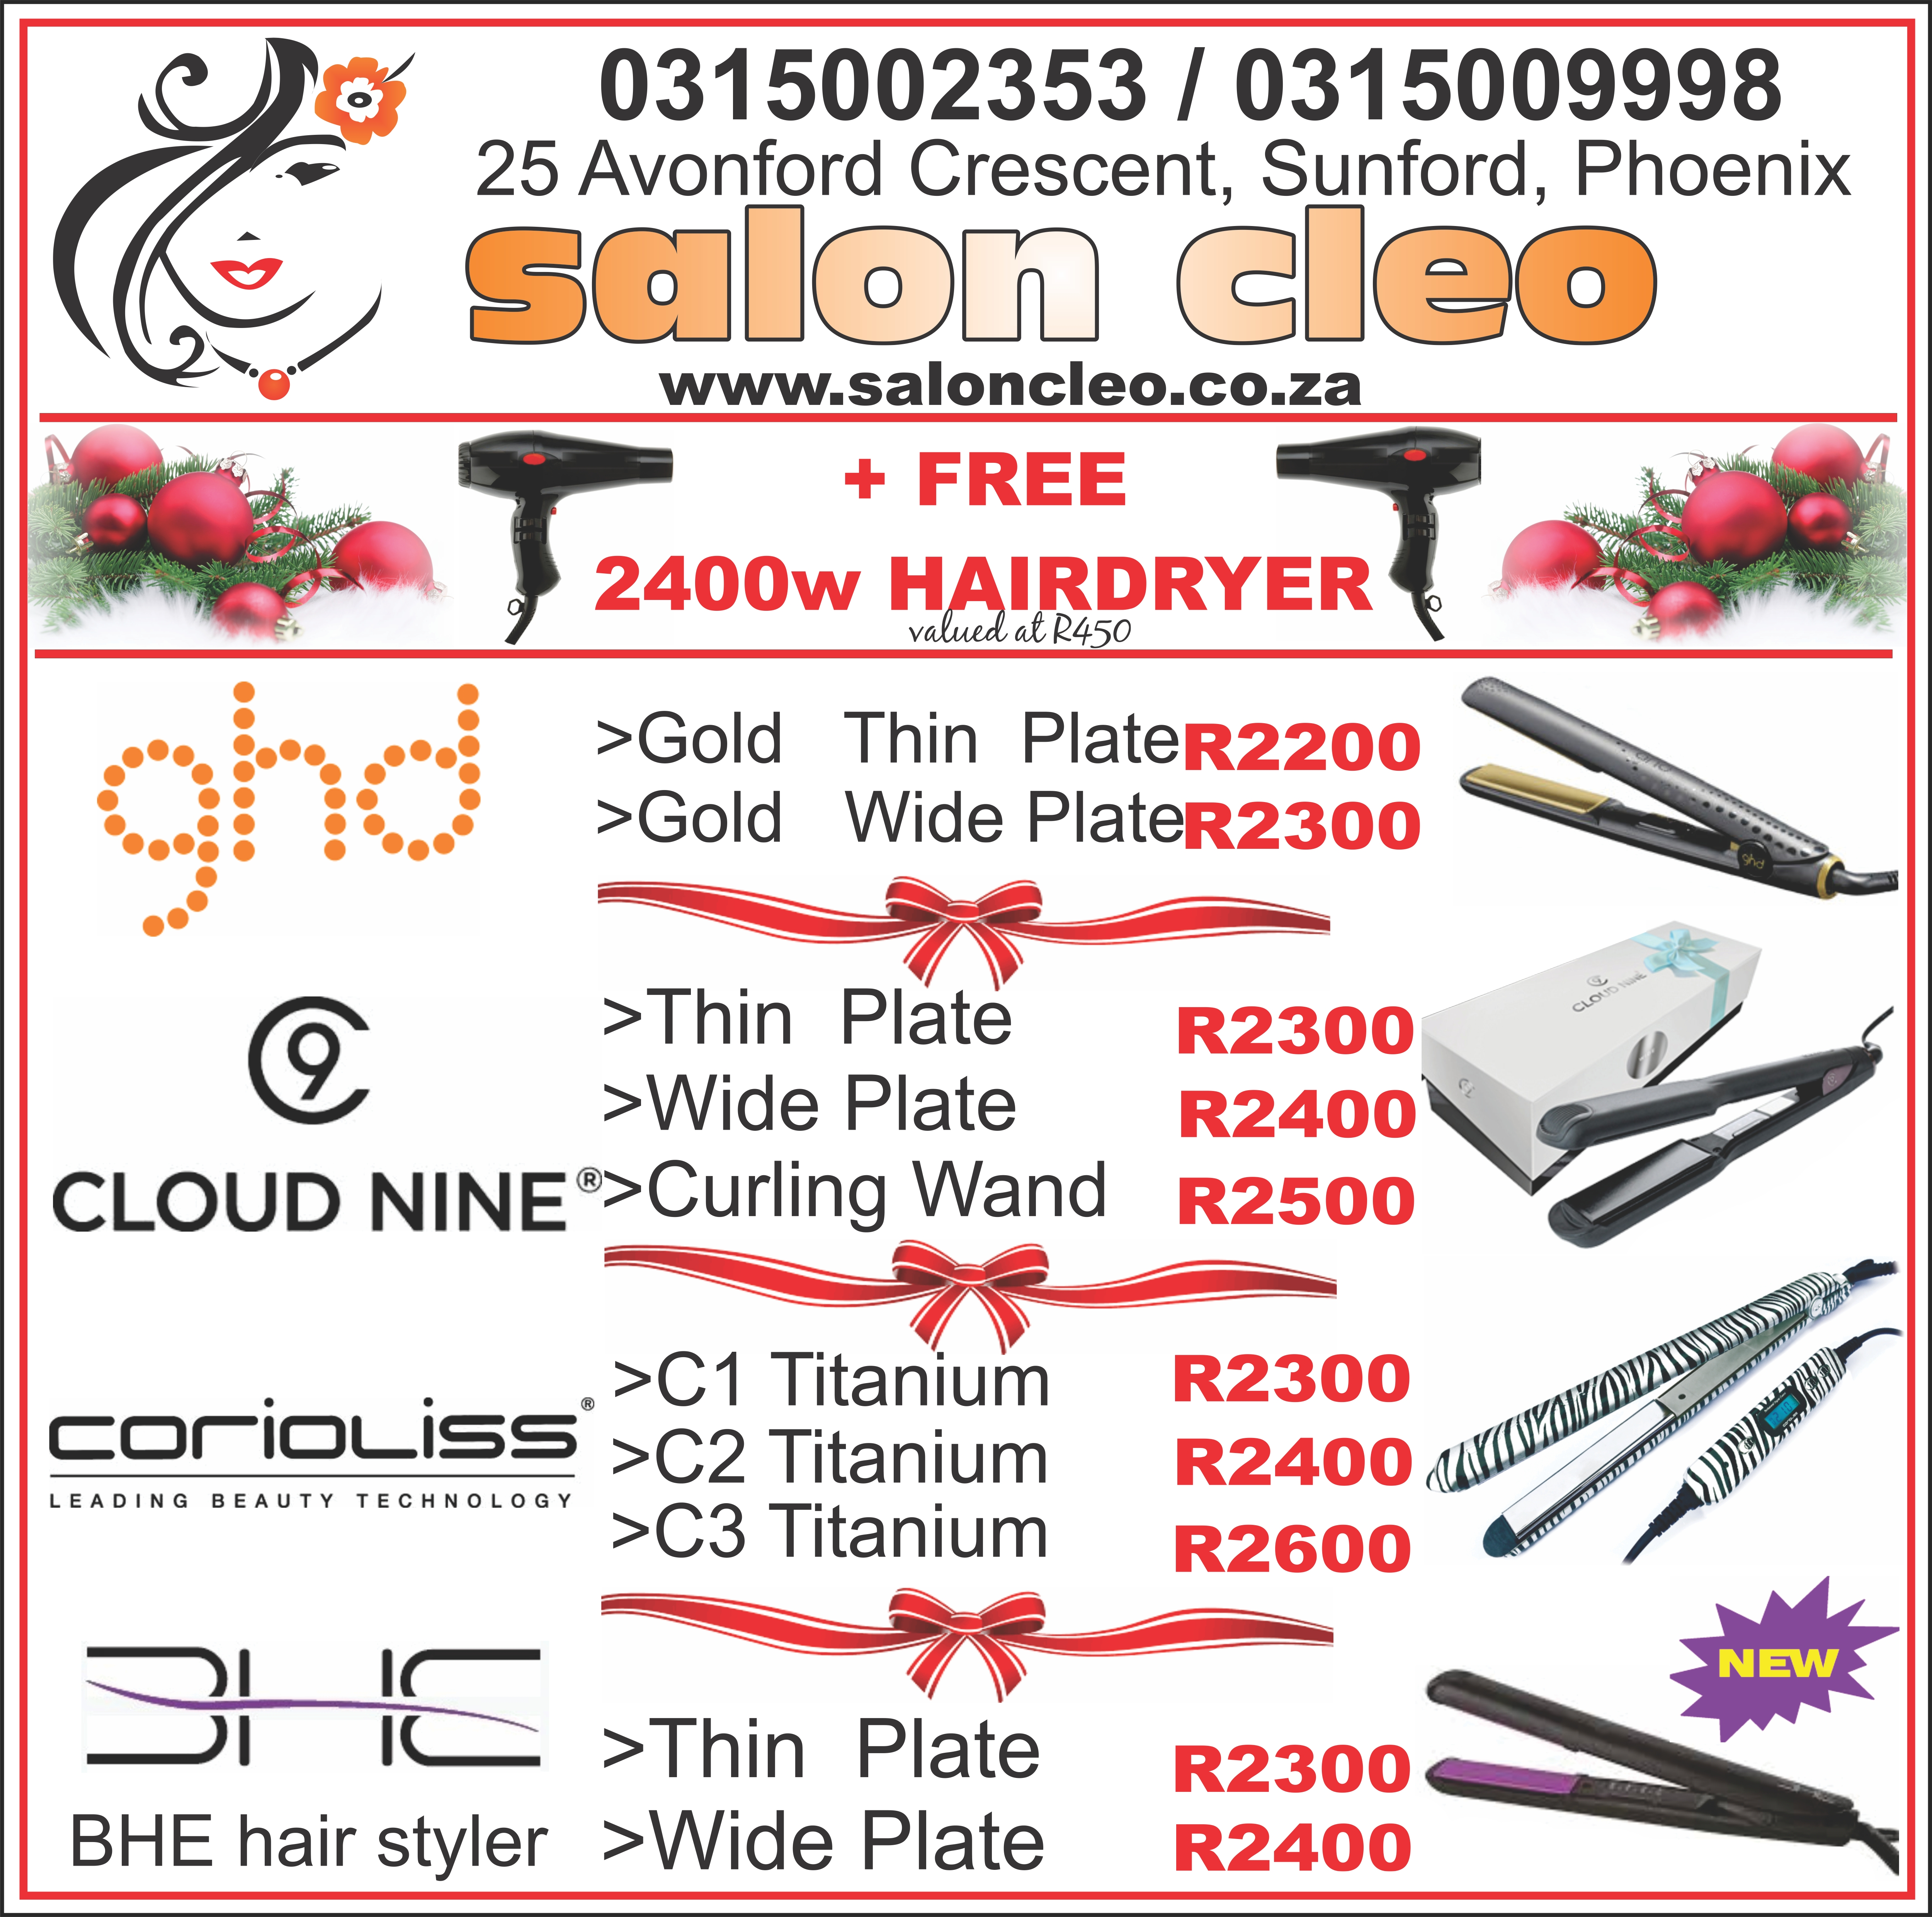 salon cleo salon cleo christmas specials december 2015 christmas hair iron specials in durban salon cleo 0315009998 cheapest deal in hair irons south africa 2016 salon cleo ghd south afrcia salon cleo cloud nine south africa salon cleo bhe hair irons south africa salon cleo durban 0315009998 cloud9 south africa salon cleo 0315009998